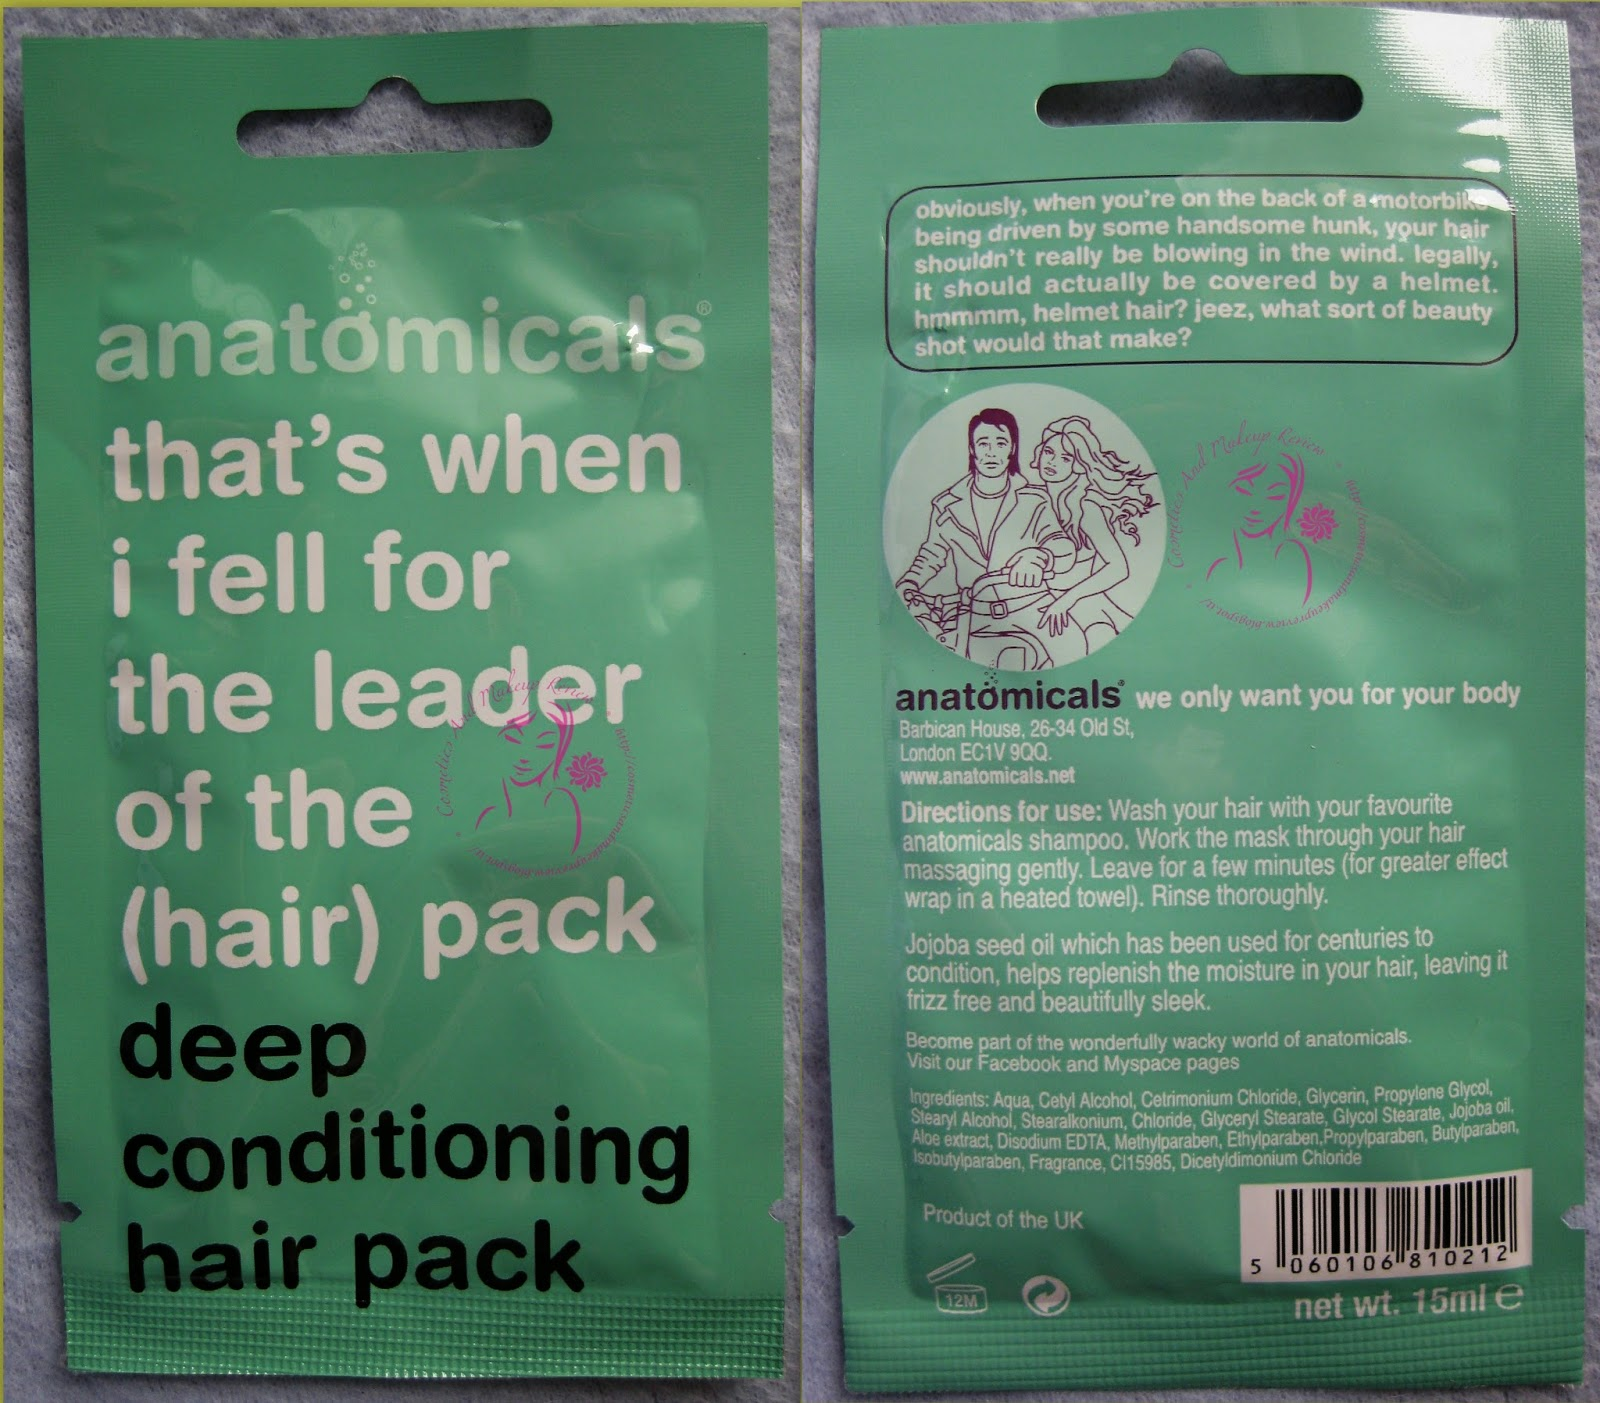 Anatomicals - That's When I fell for the leader of the (hair ) pack - Deep conditioning hair pack - packaging